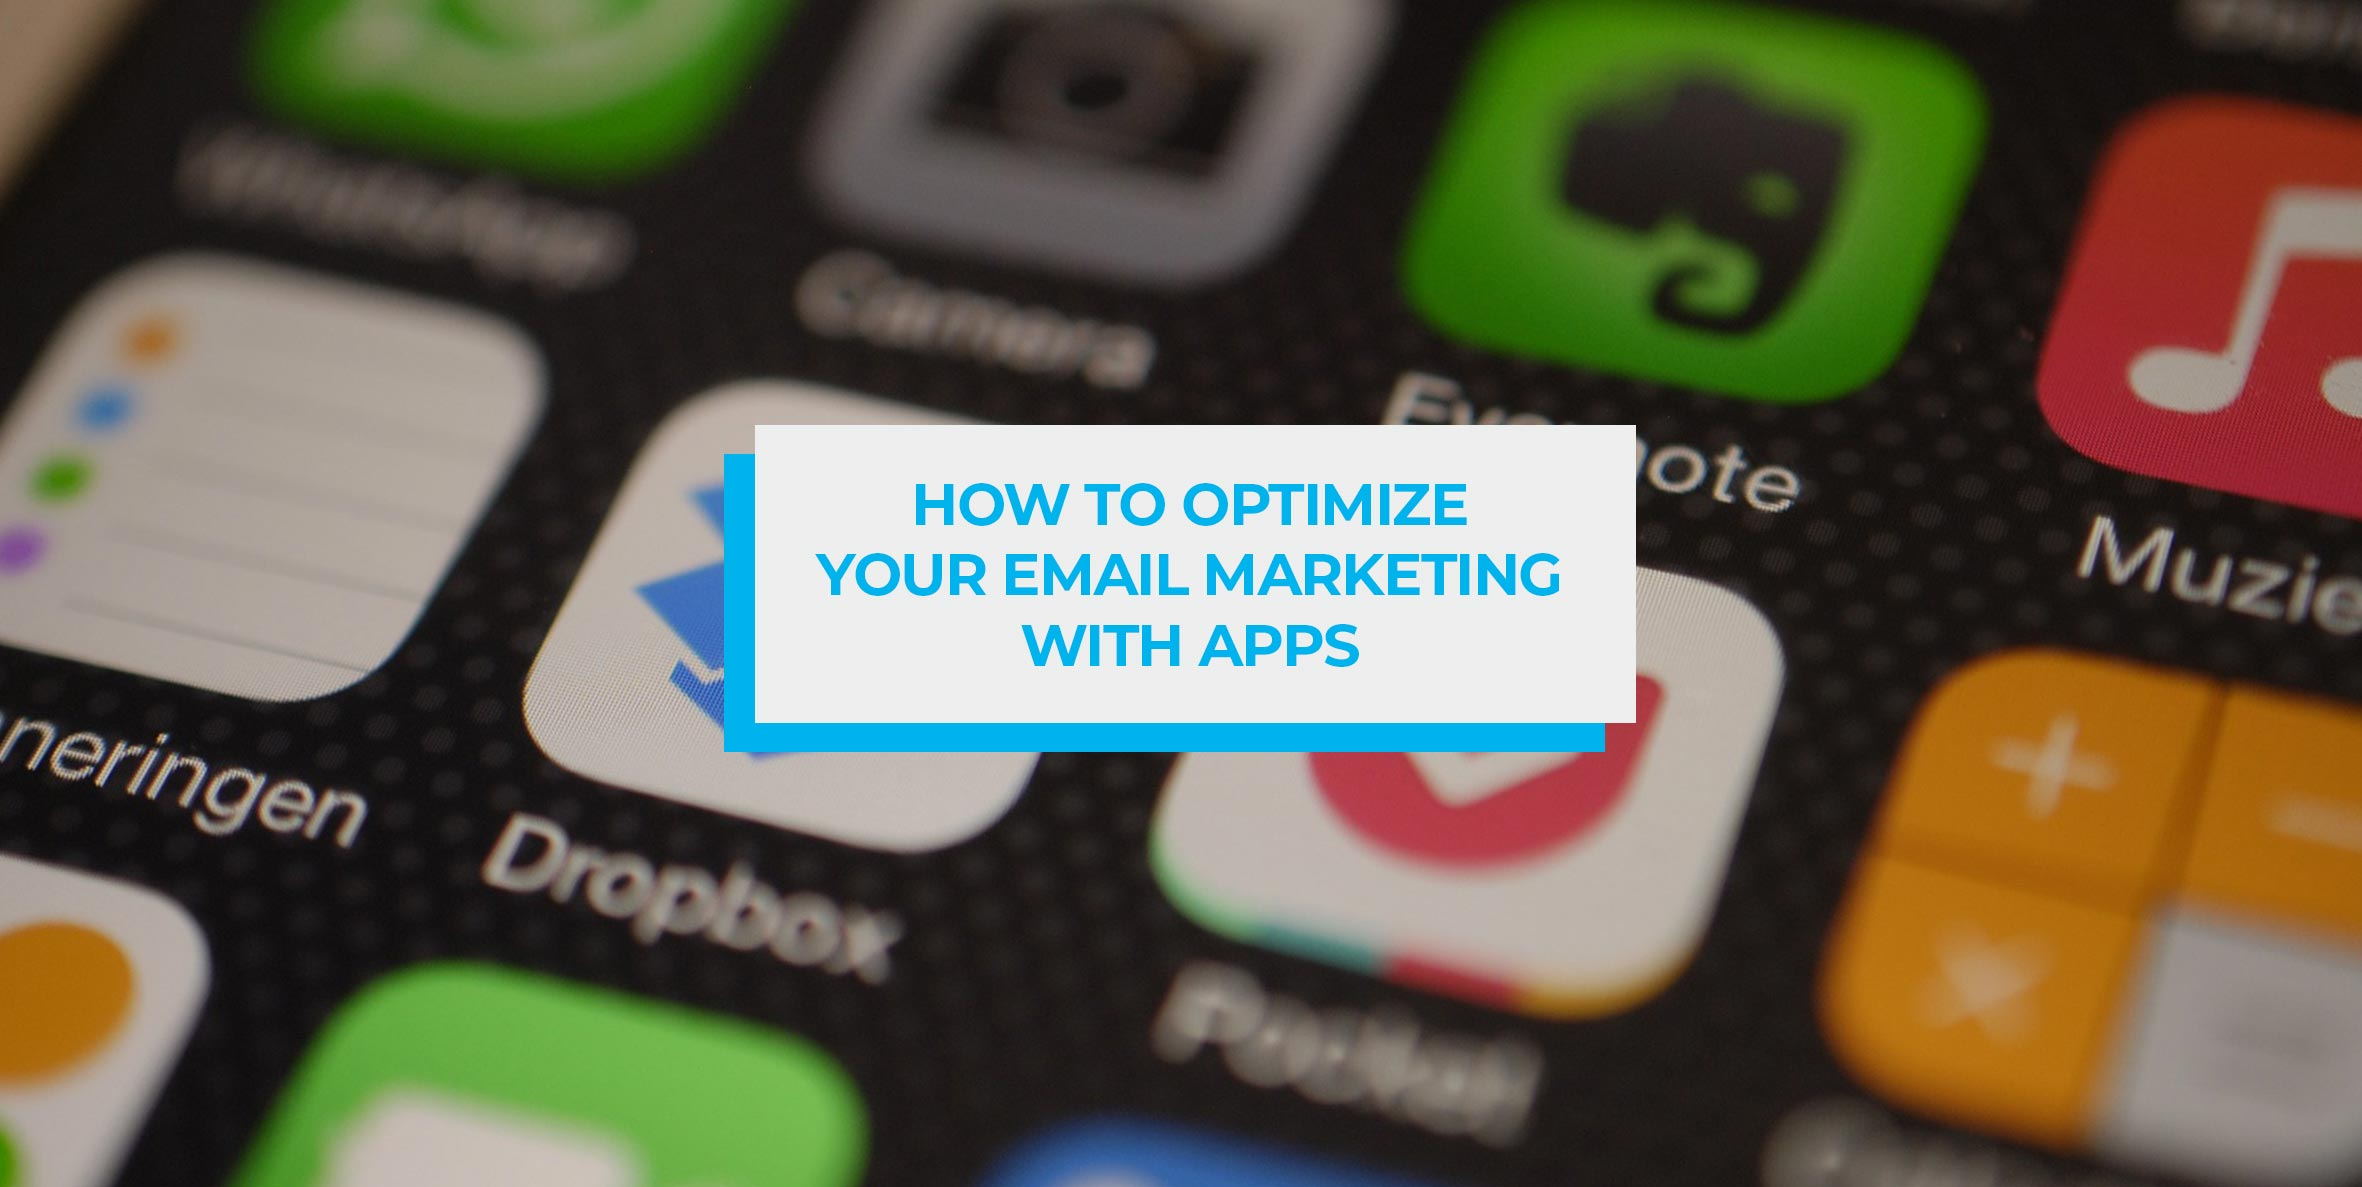 How to Optimize Your Email Marketing With Apps blog header image